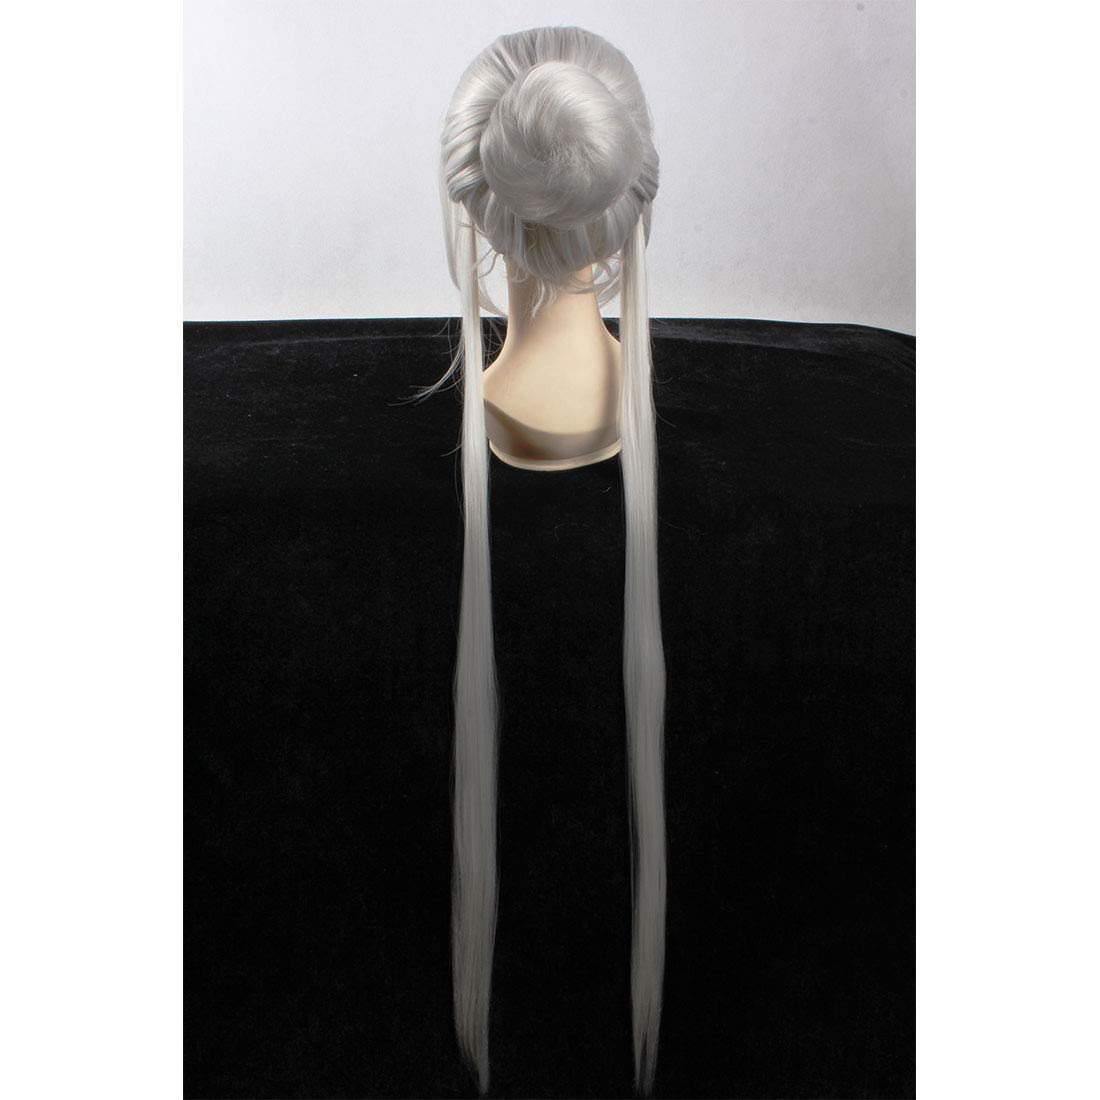 Amazon Com Hoolaza Silver White Long Layered Wig Kung Fu Panda 2 Lord Shen For The Halloween Party Cosplay Wigs Beauty